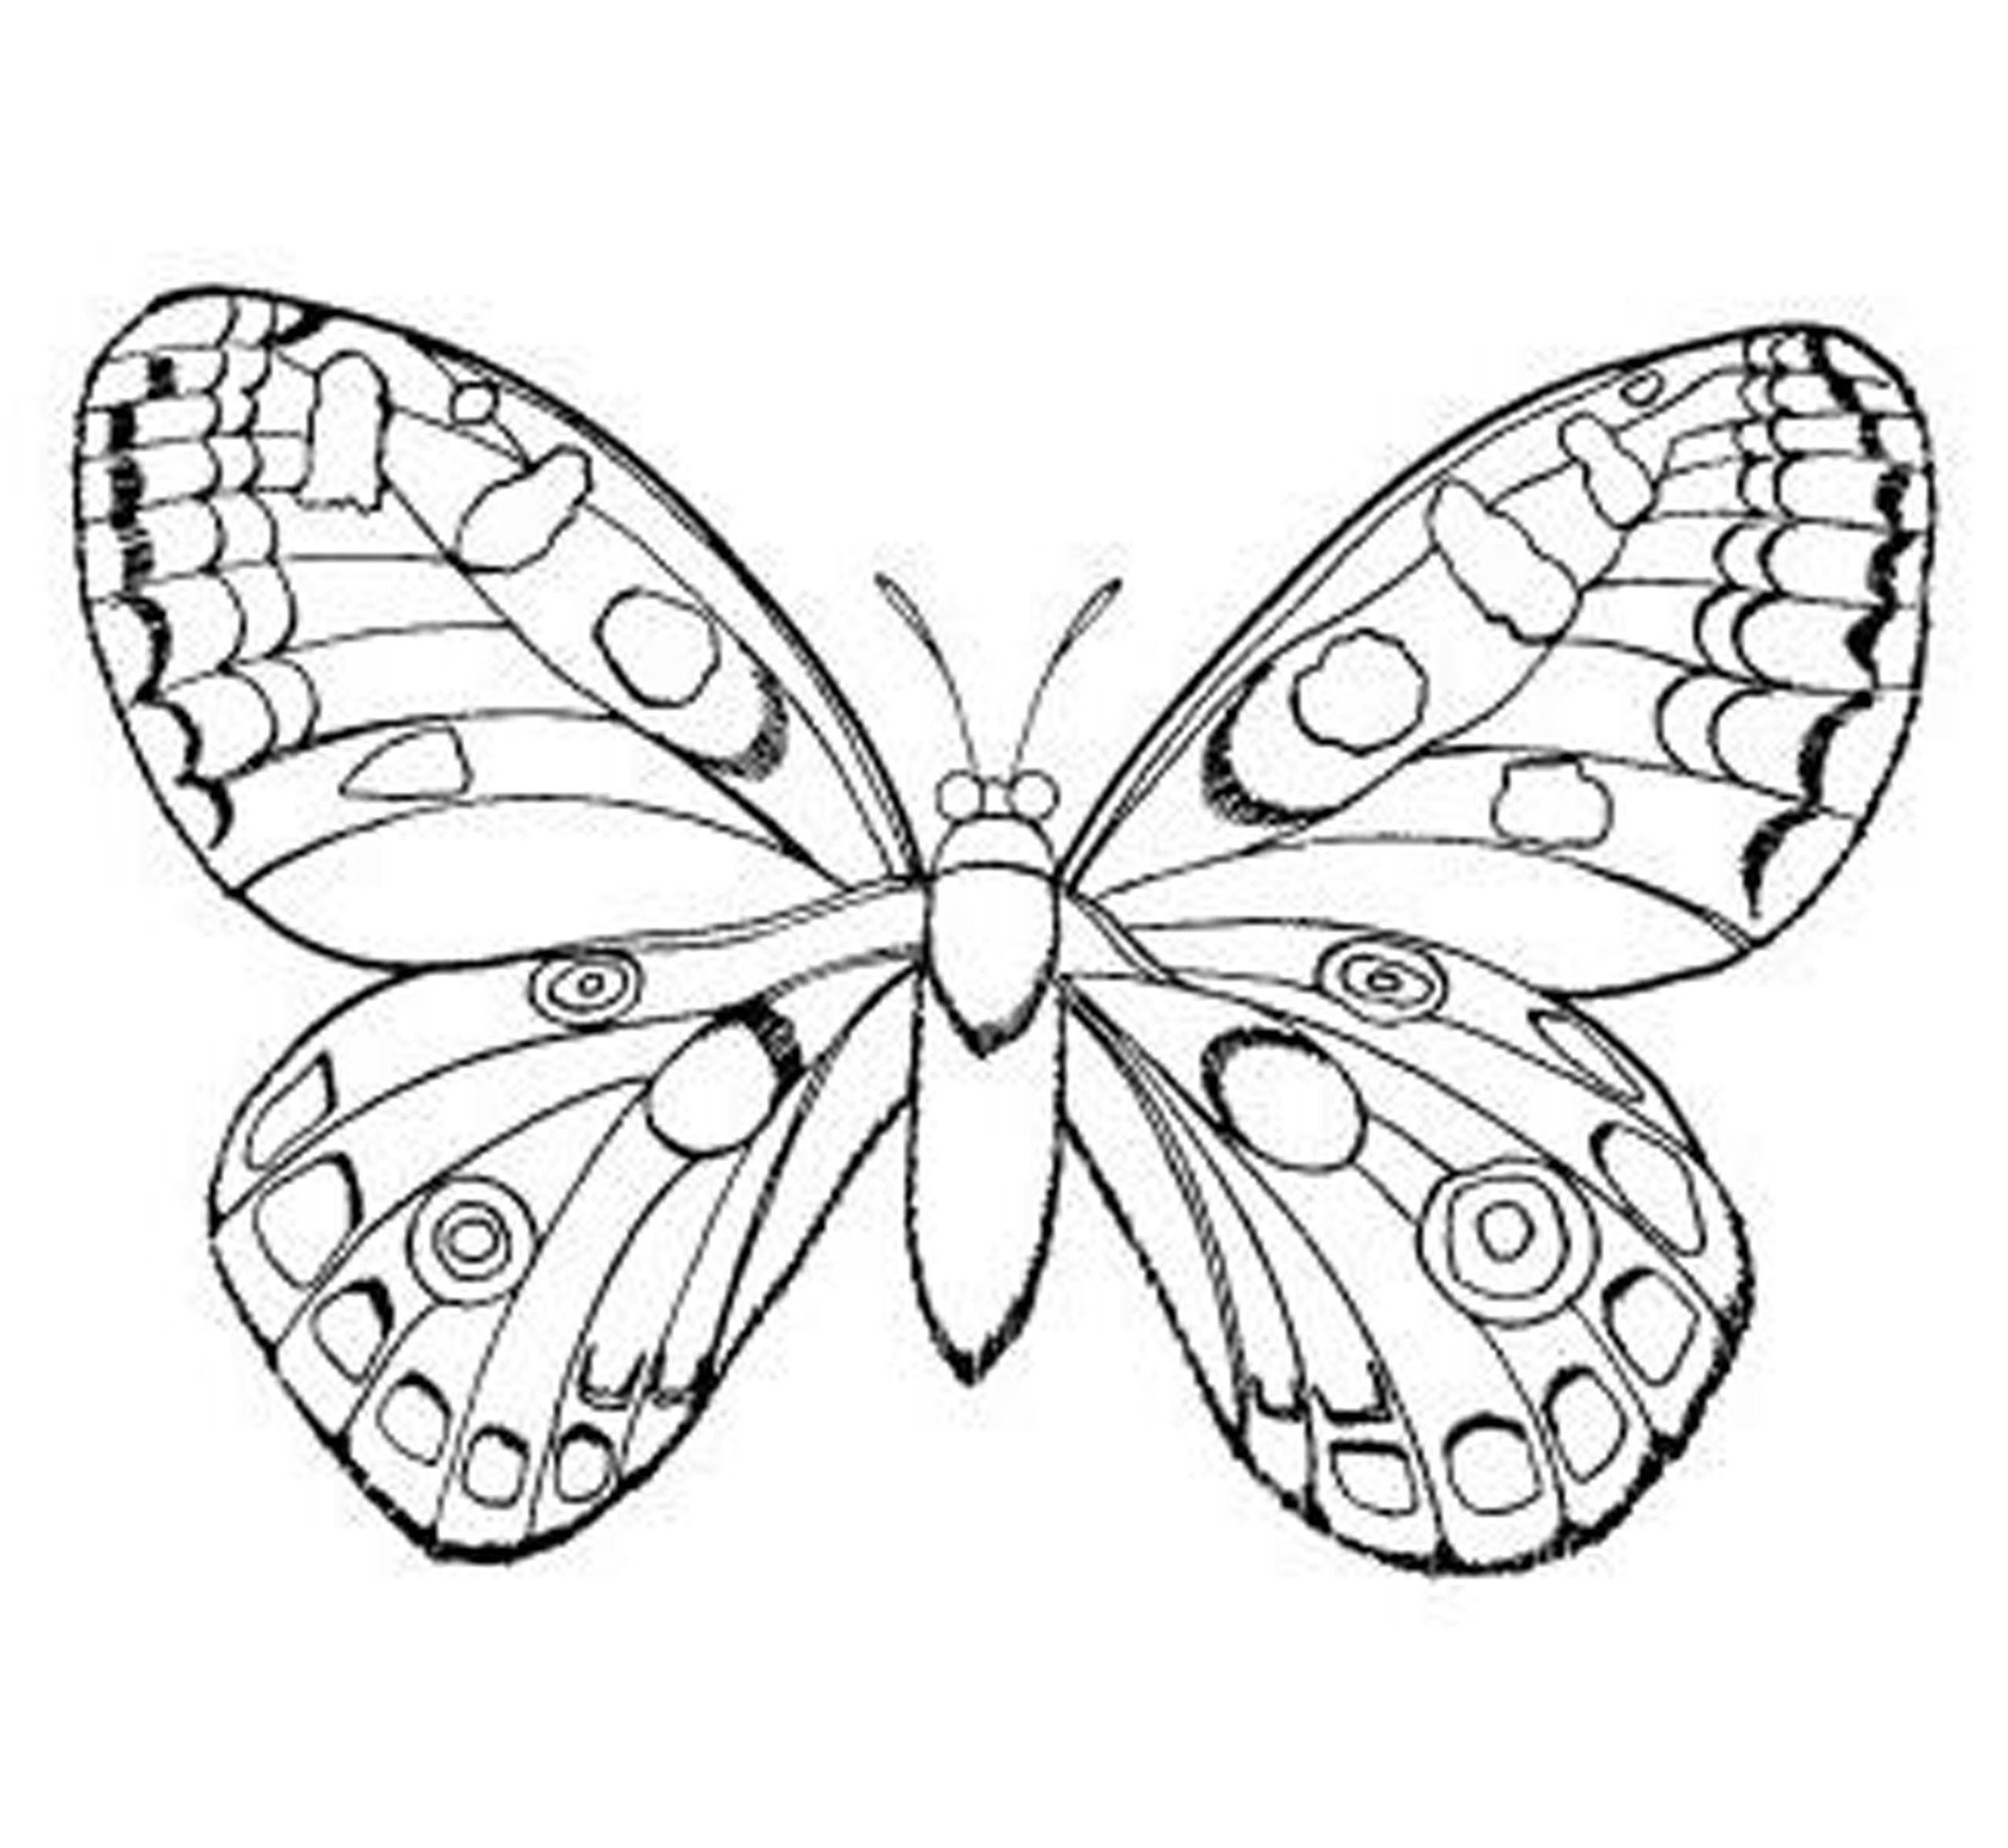 Colouring in pages for girls butterflies - Free Coloring Pages Easy Coloring Pages Free Coloring Pages For Girls Excellent Easy